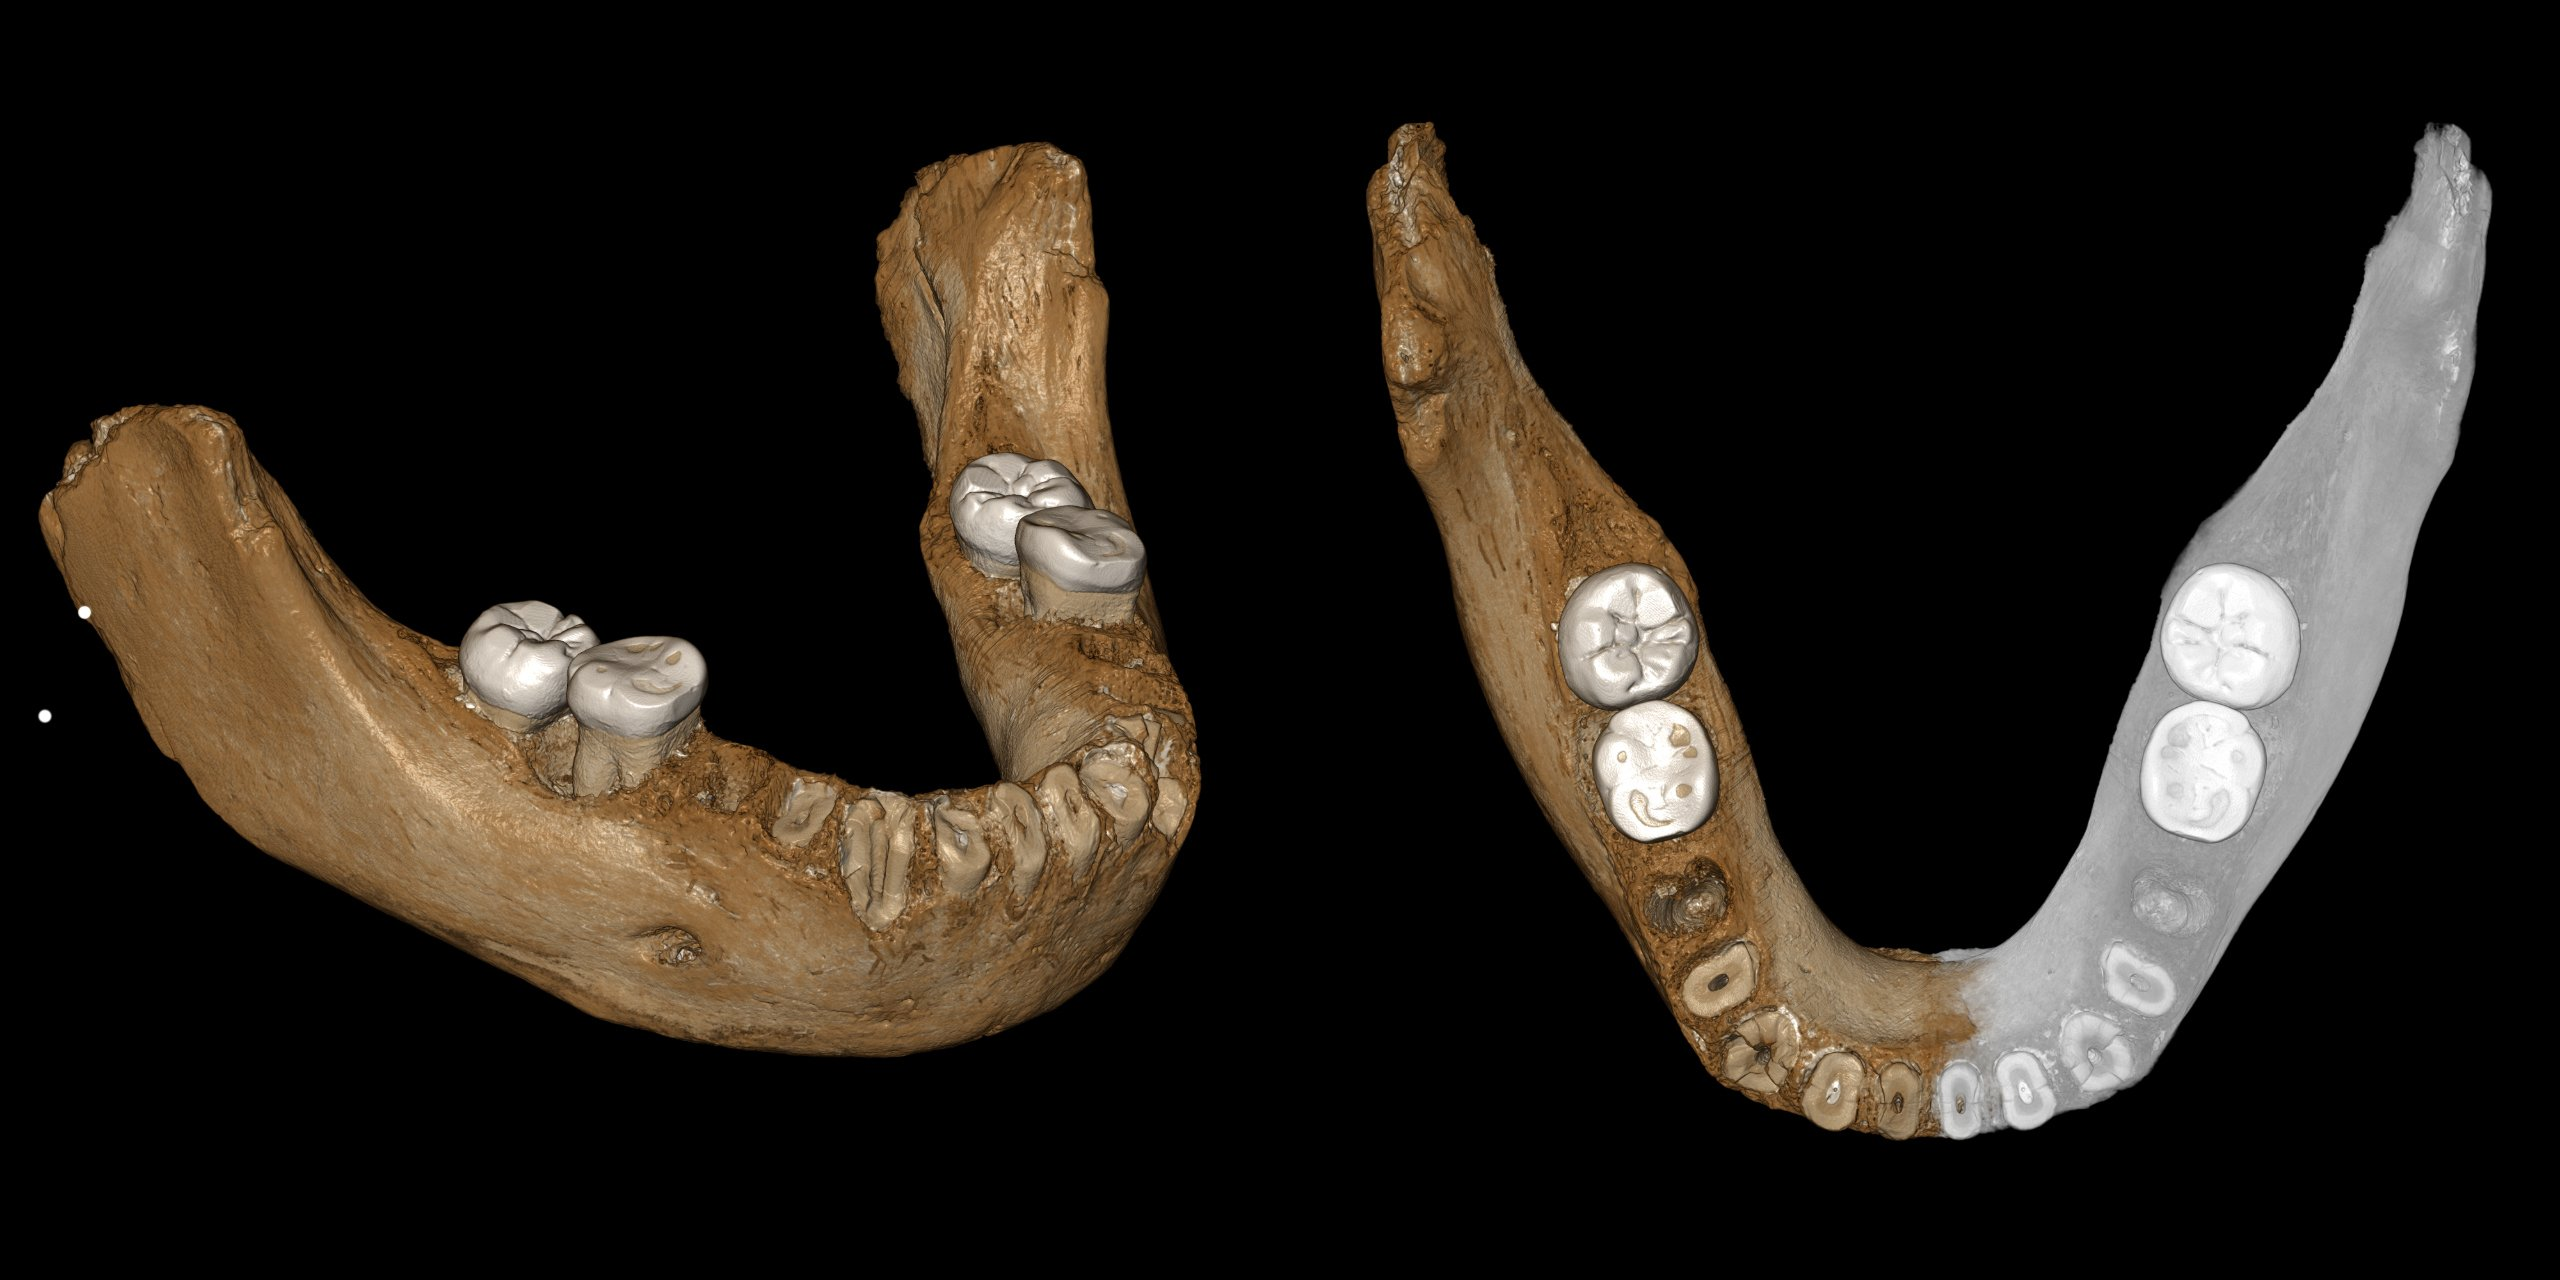 Chinese fossil sheds light on mysterious Neanderthal kin – The Associated Press